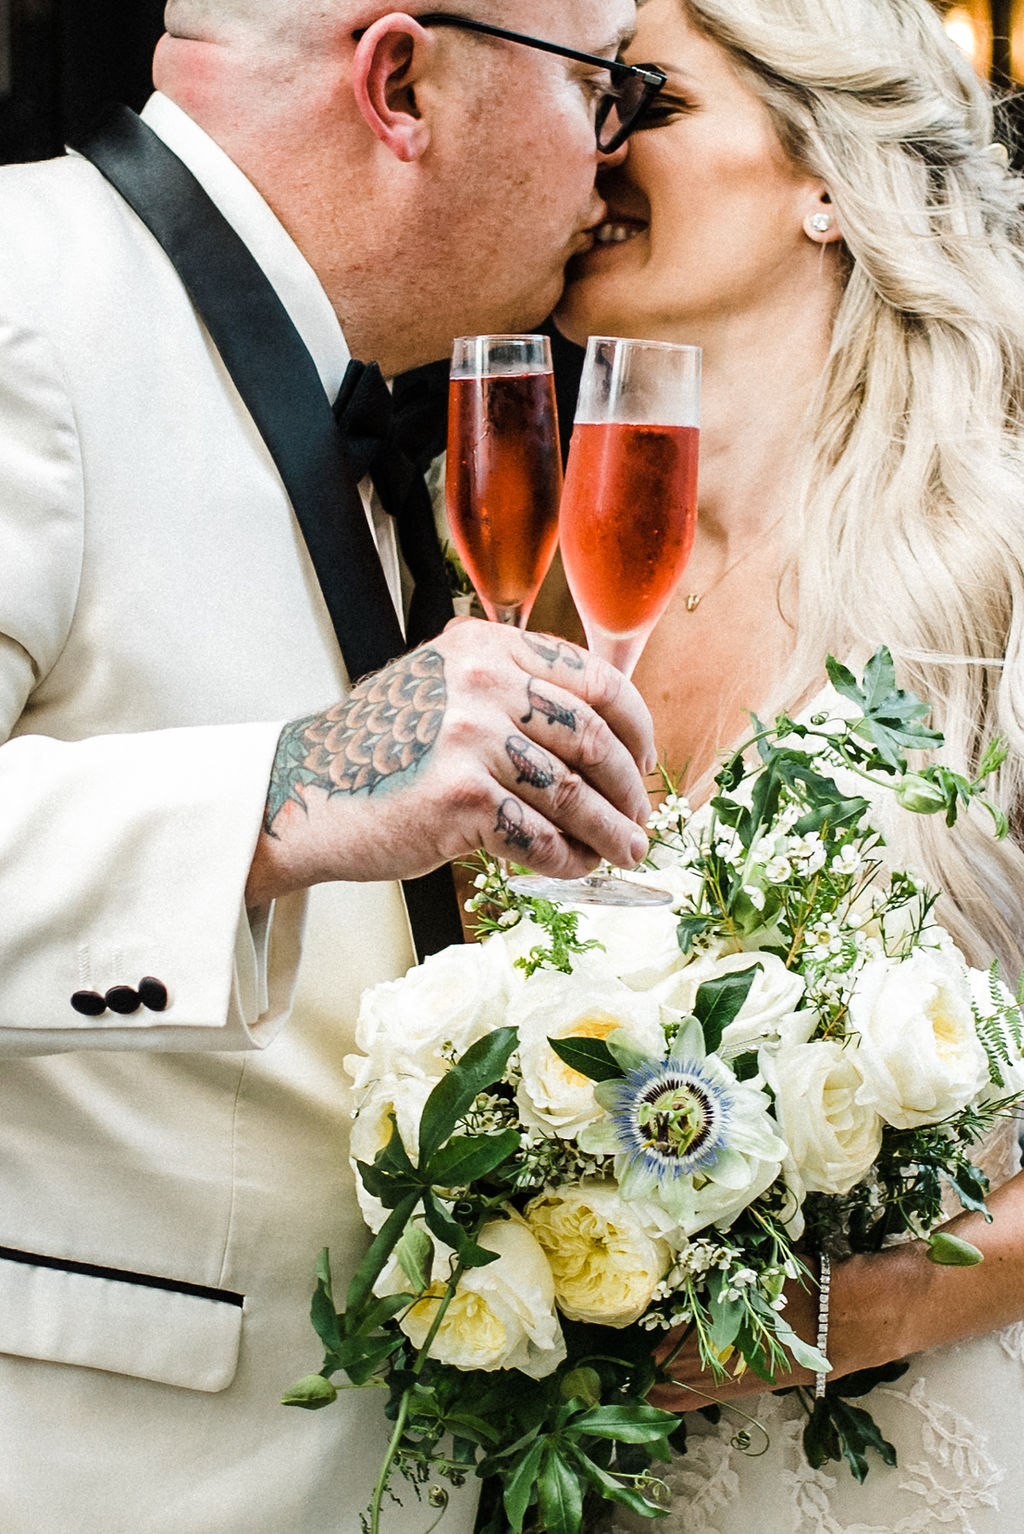 Bride and groom cheersing with rose on their wedding day in Hartford, CT - Pearl Weddings & Events